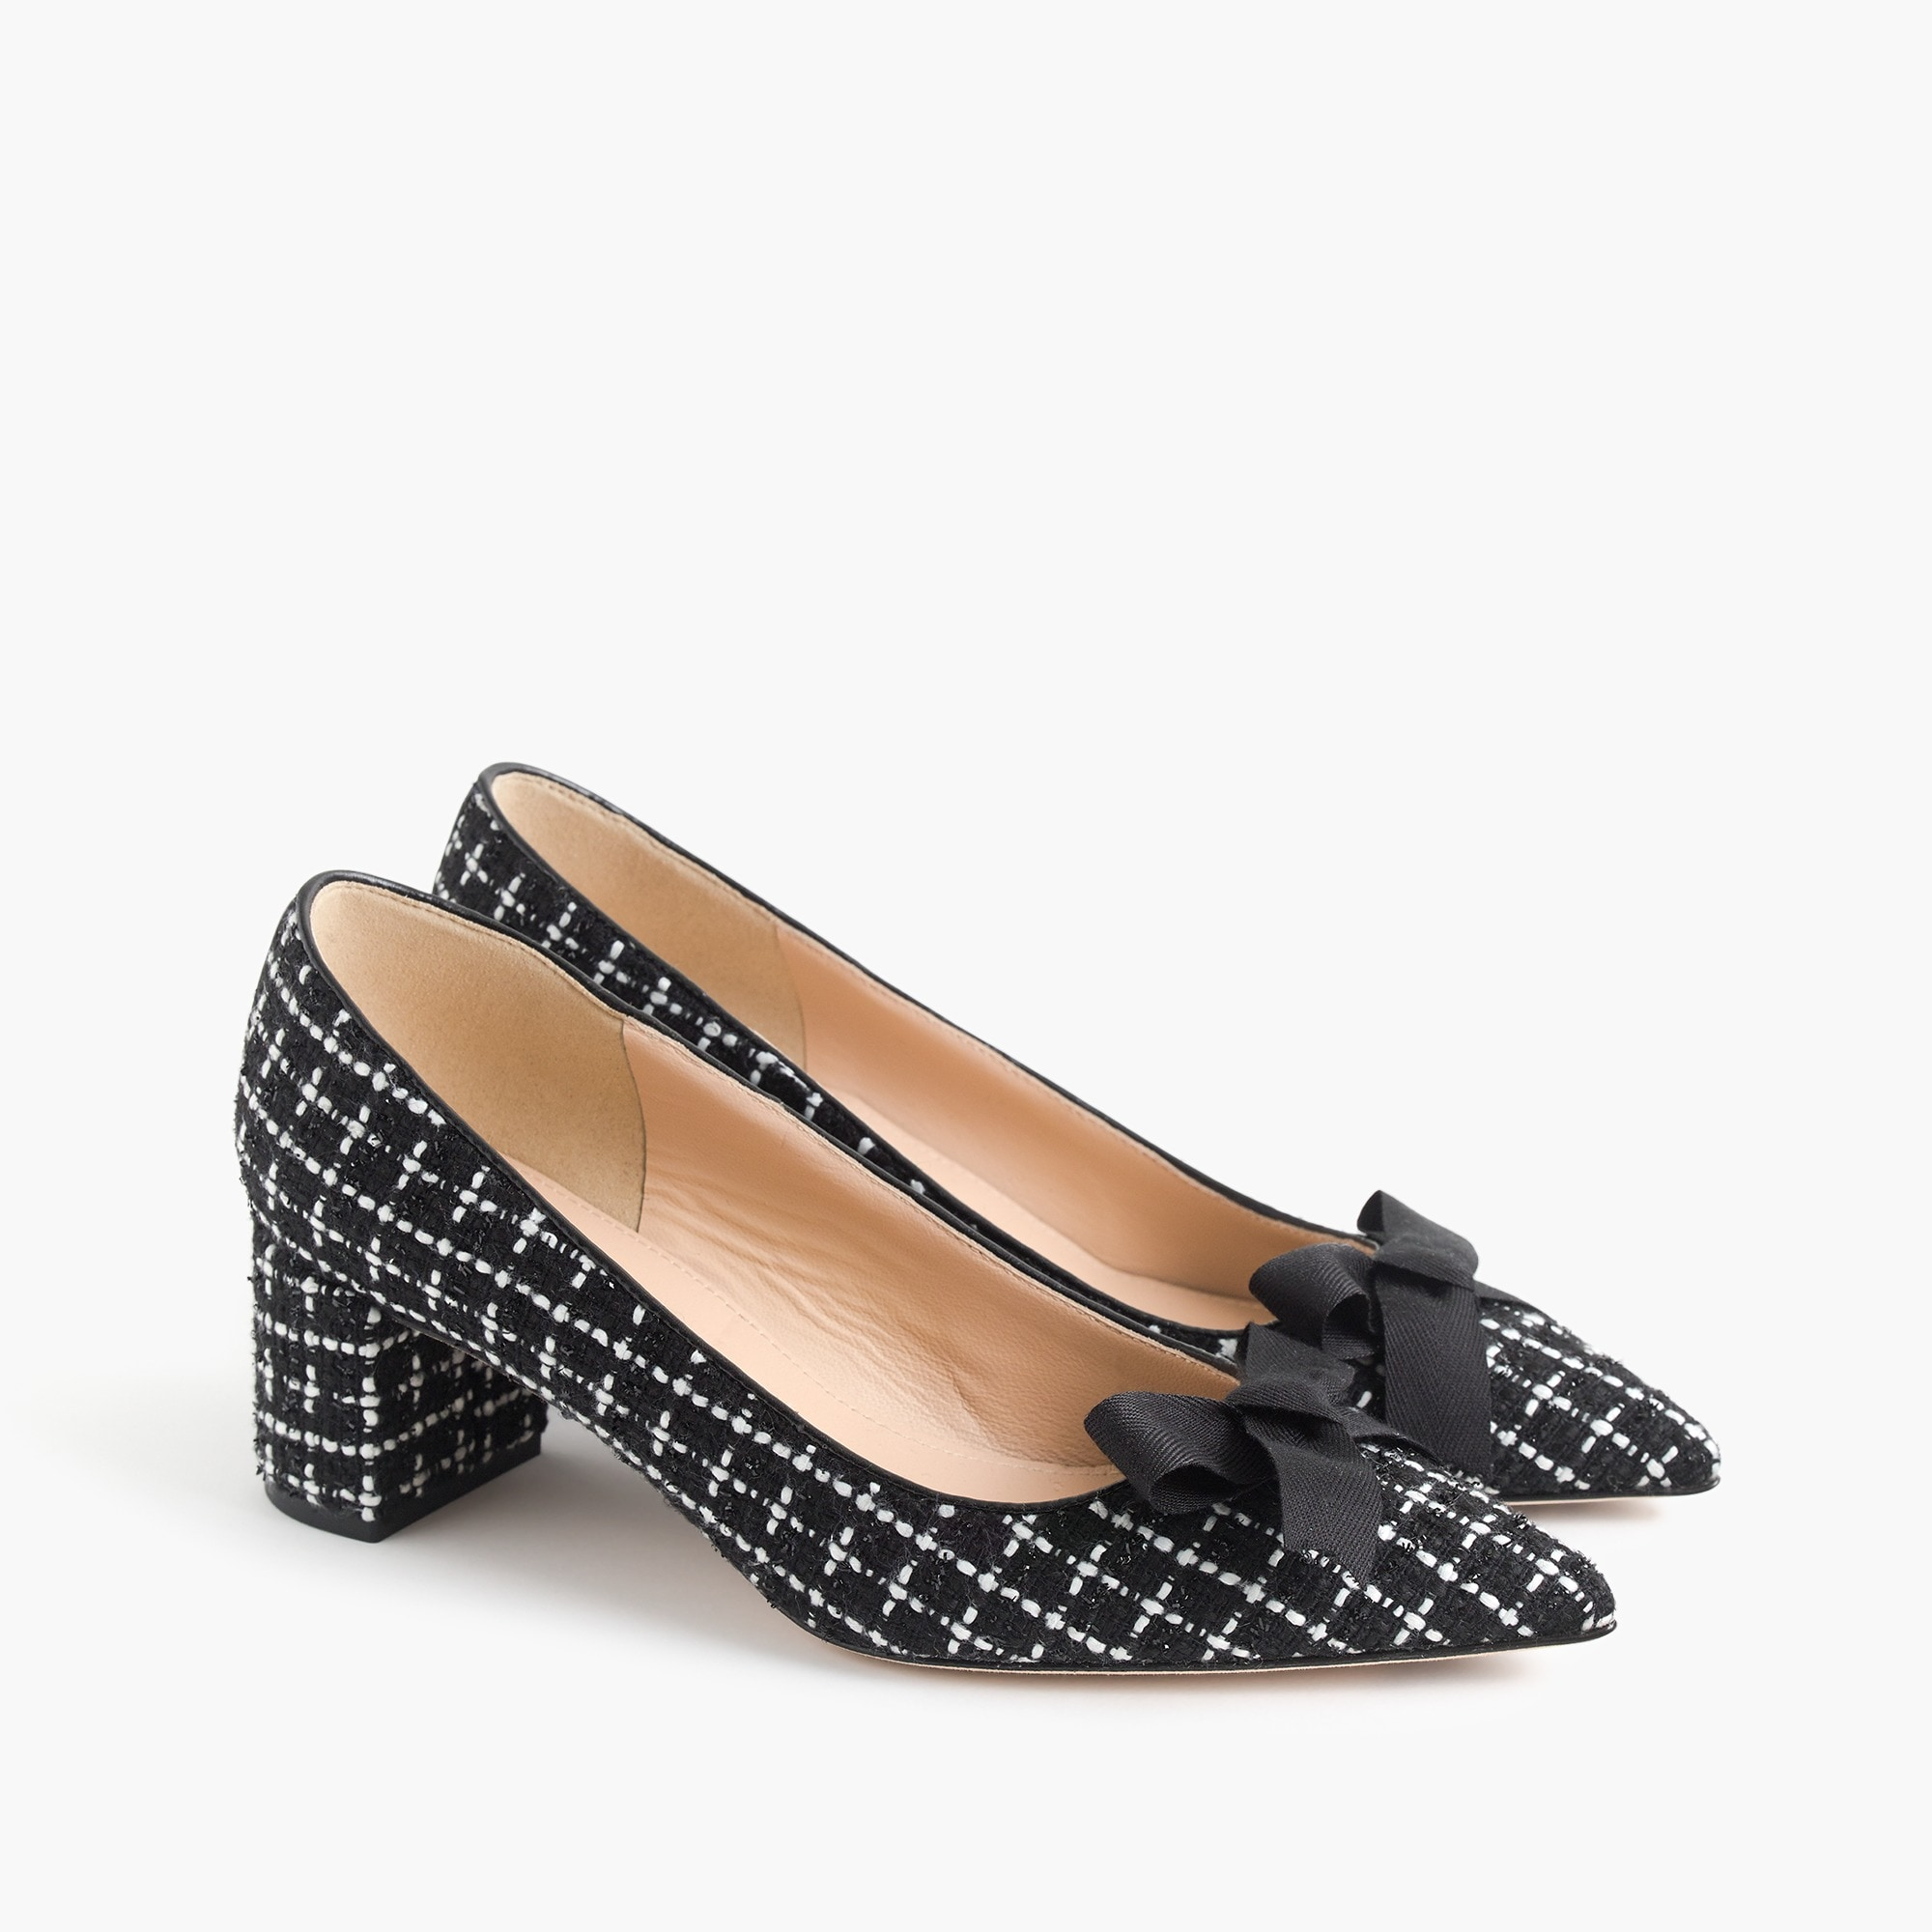 Avery tweed pumps